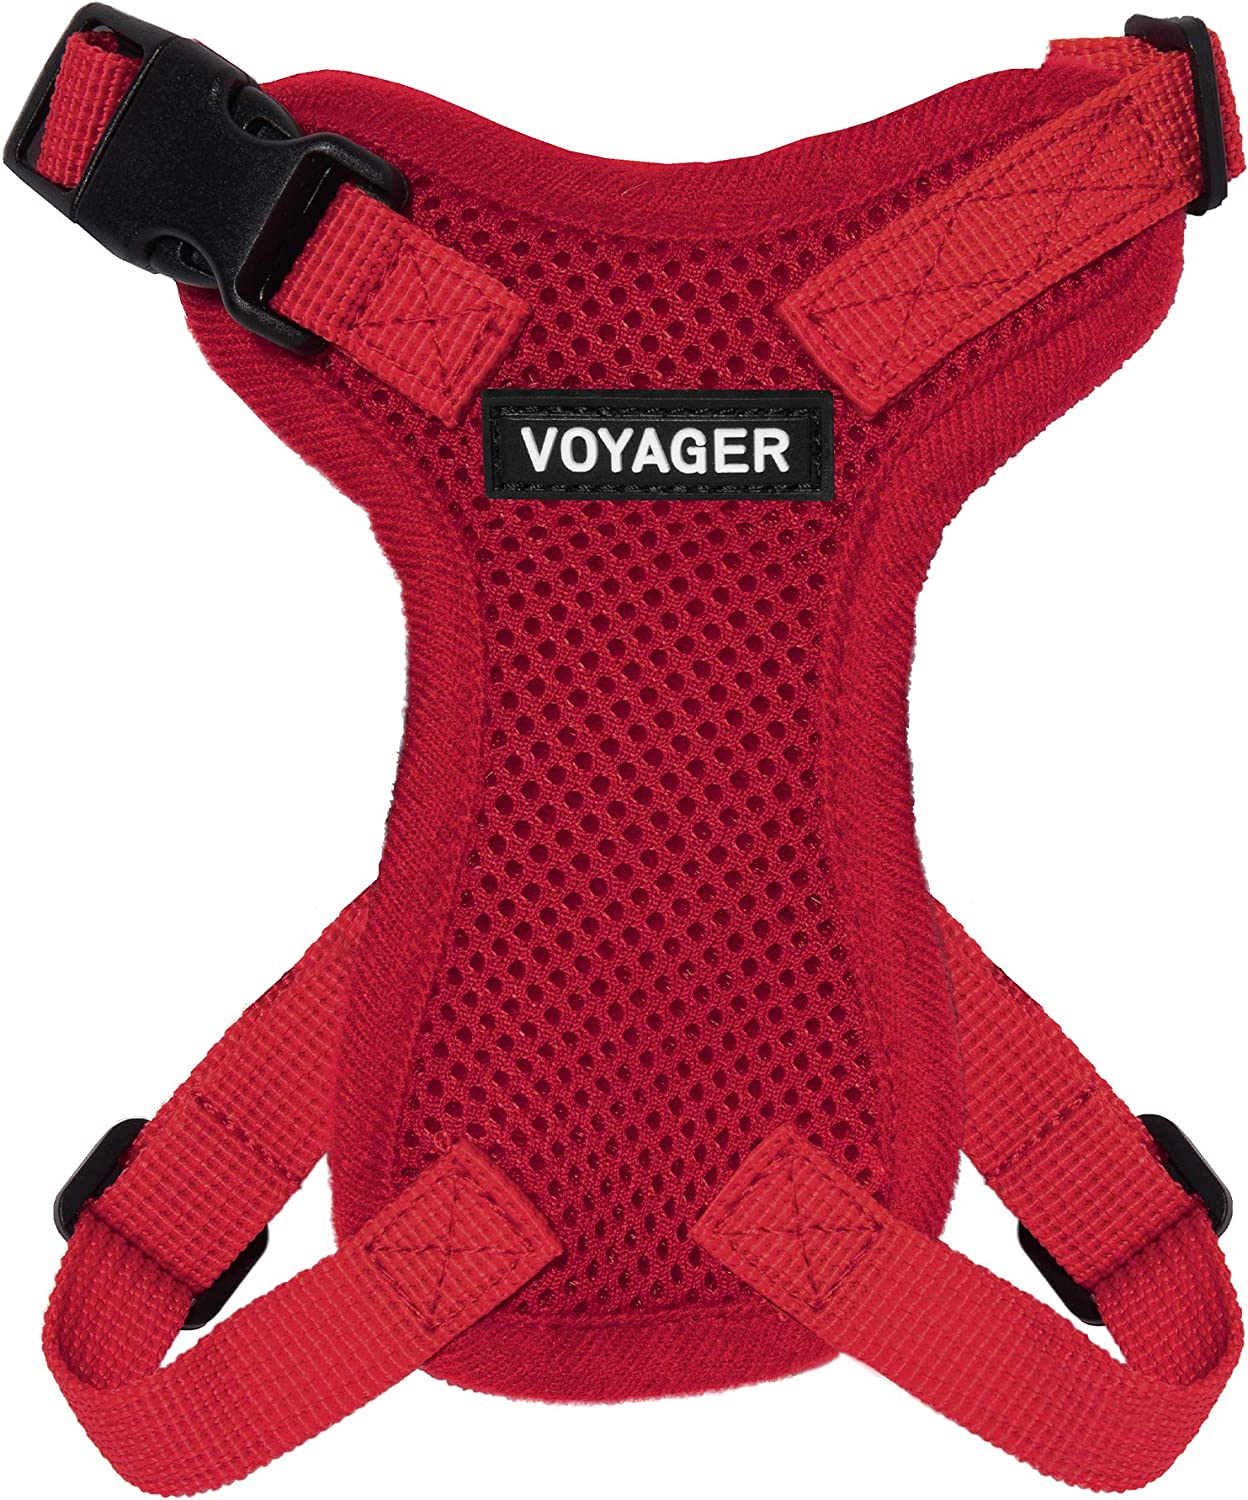 Adjustable Step-in Vest Harness for Small and Large Dogs Voyager Step-in Lock Dog Harness Royal Blue L Chest: 19-30 Large